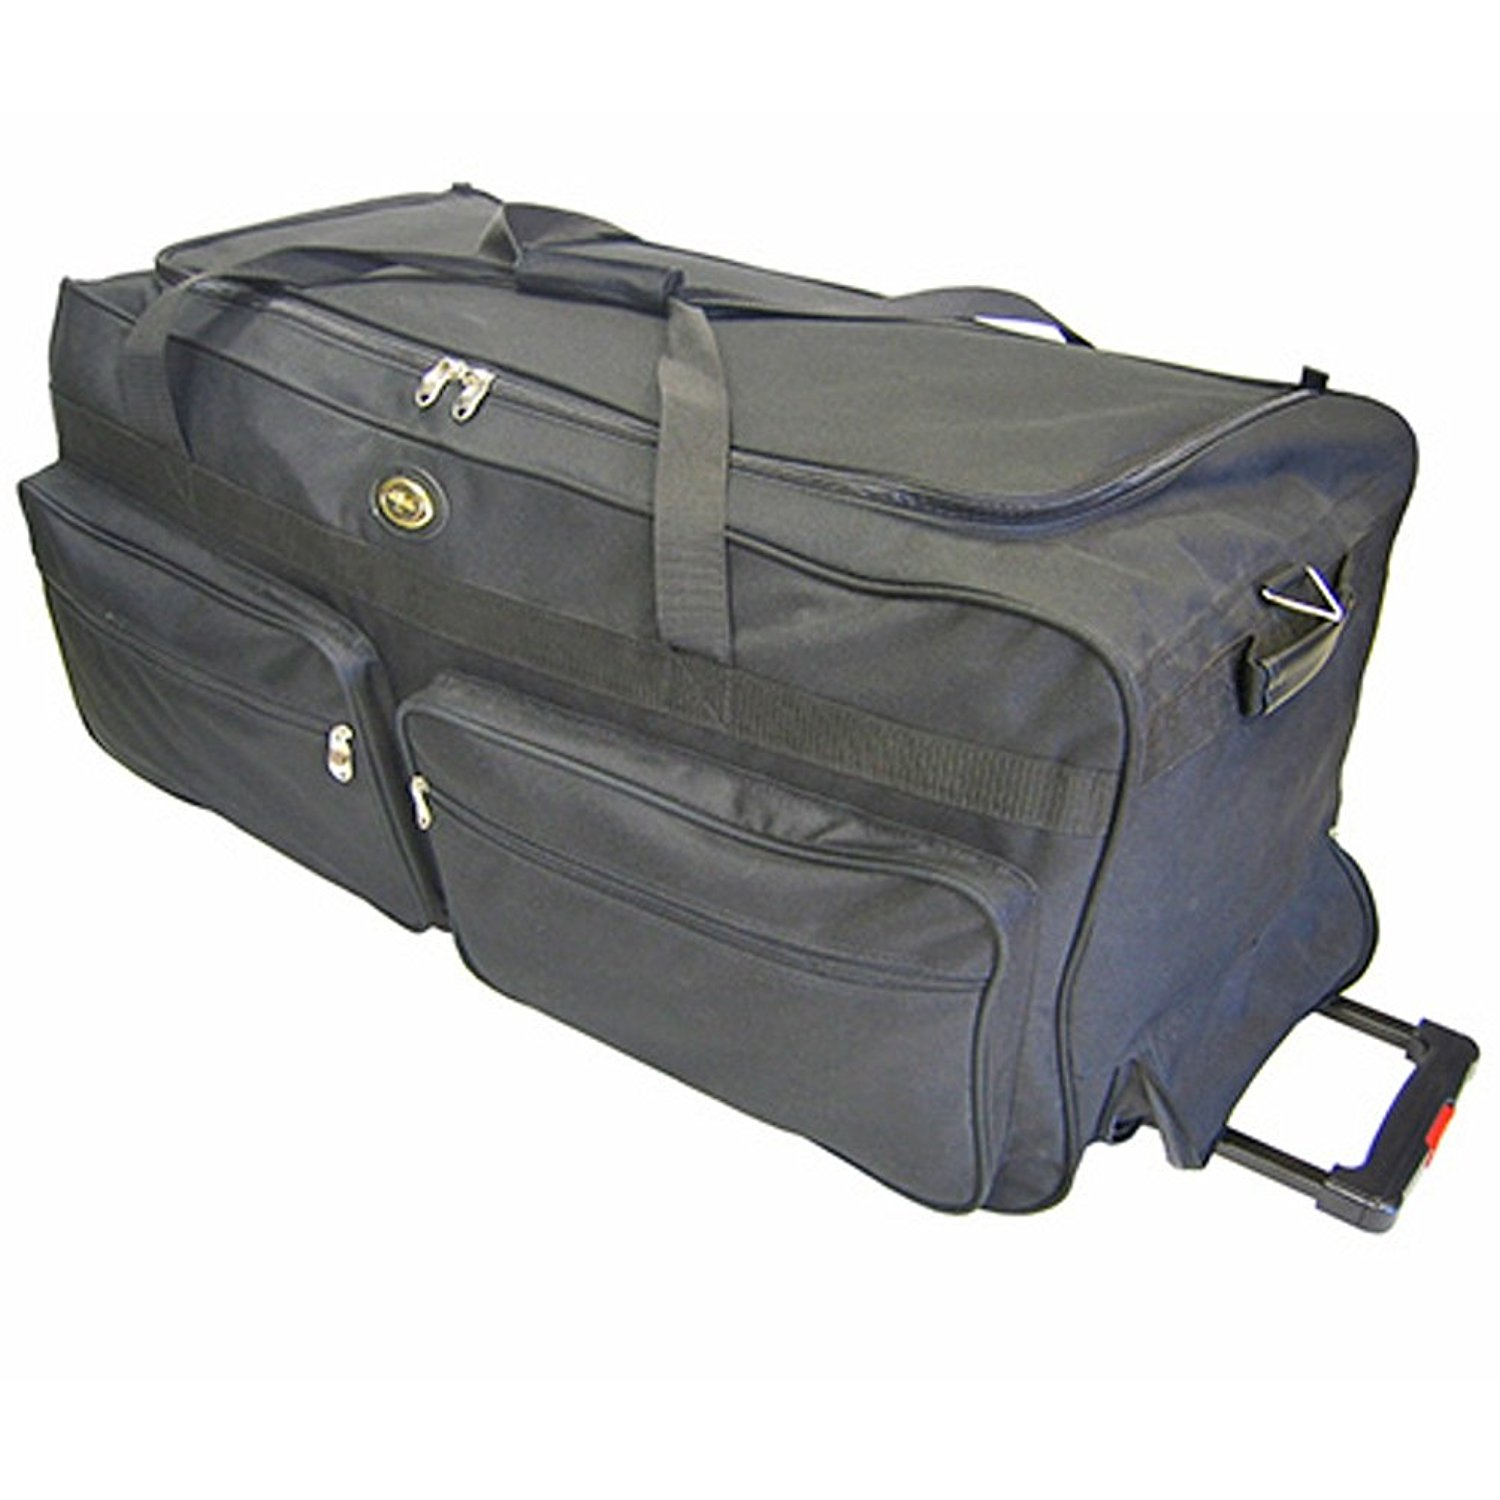 "Travel Sport Rolling Black Duffle Bag, 30"" inch by Golden Wing"